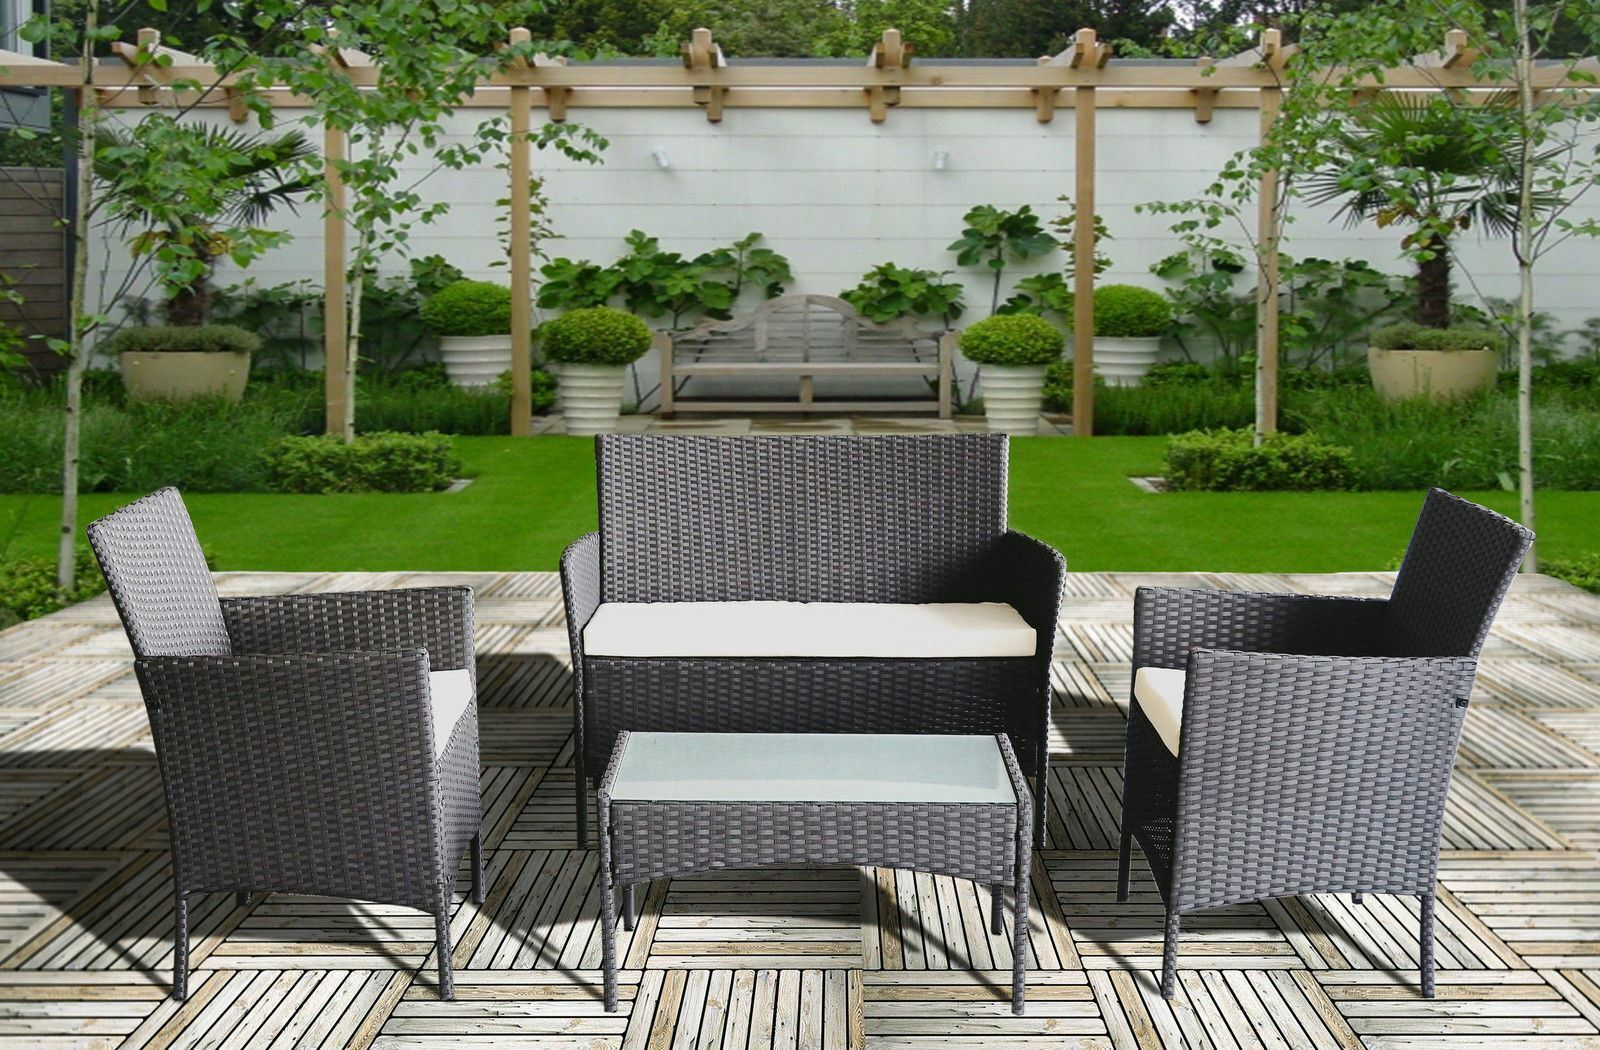 Garden Furniture - Rattan Garden Furniture Set 4 Piece Chairs Table for Patio Outdoor Conservatory